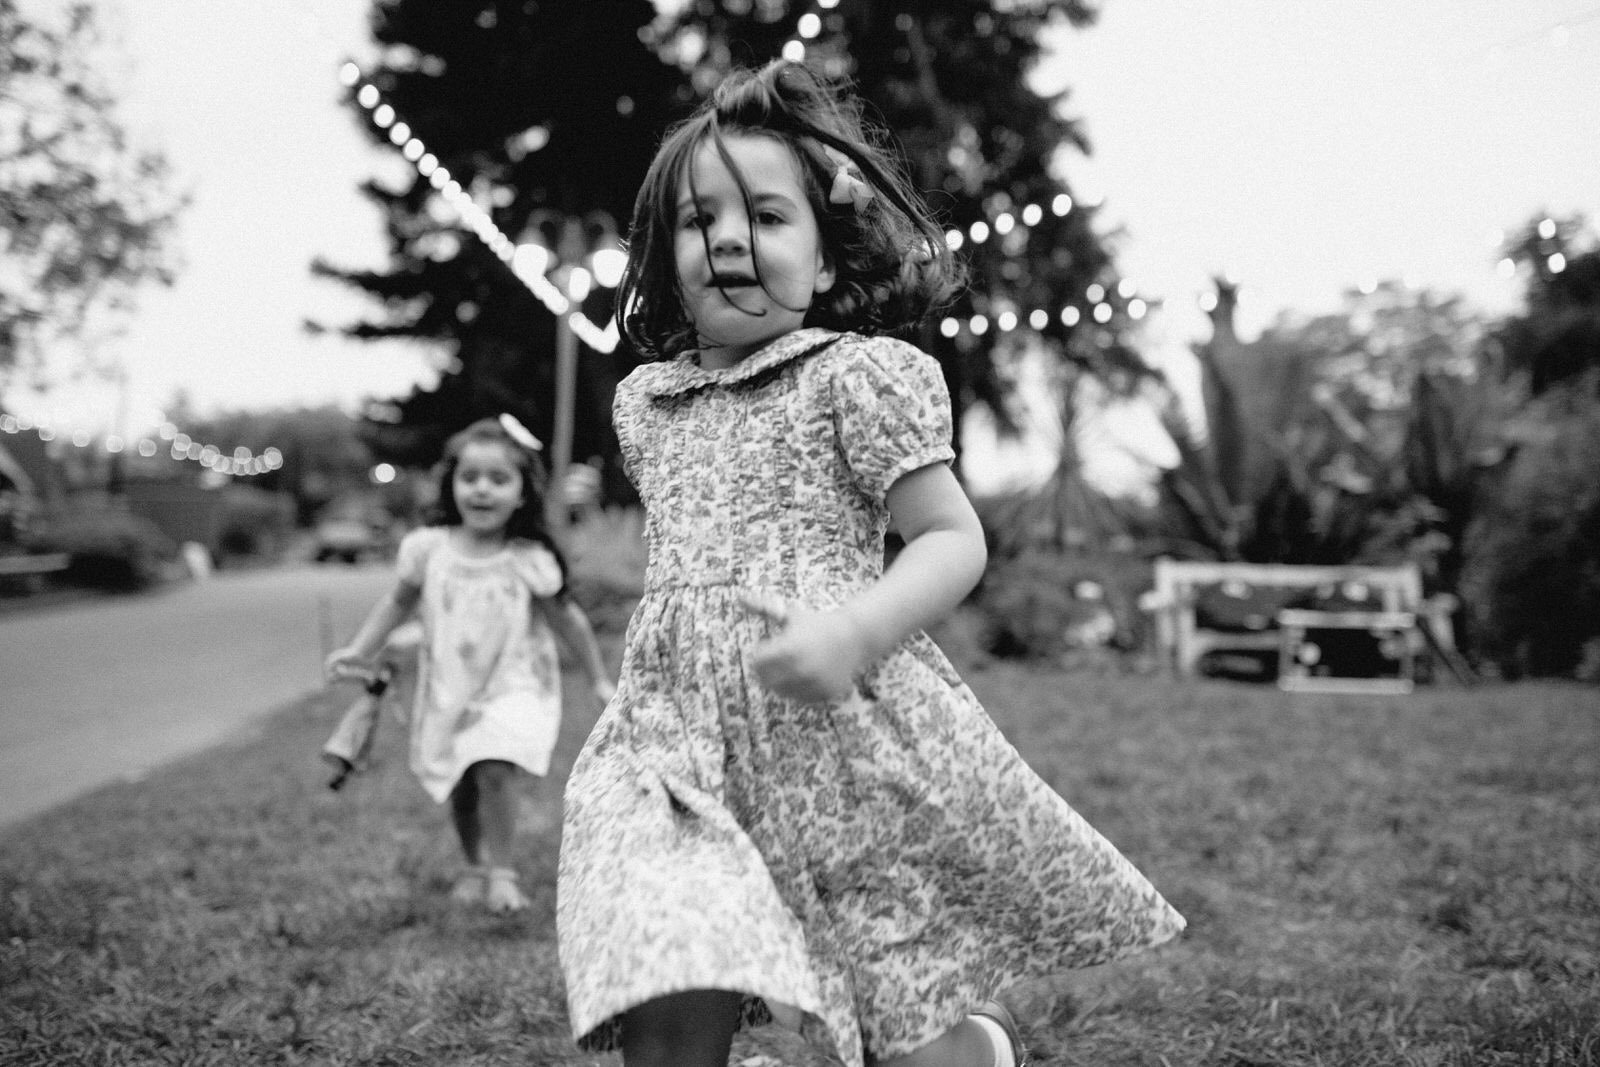 black and white image of two little girls in floral dresses running at the camera